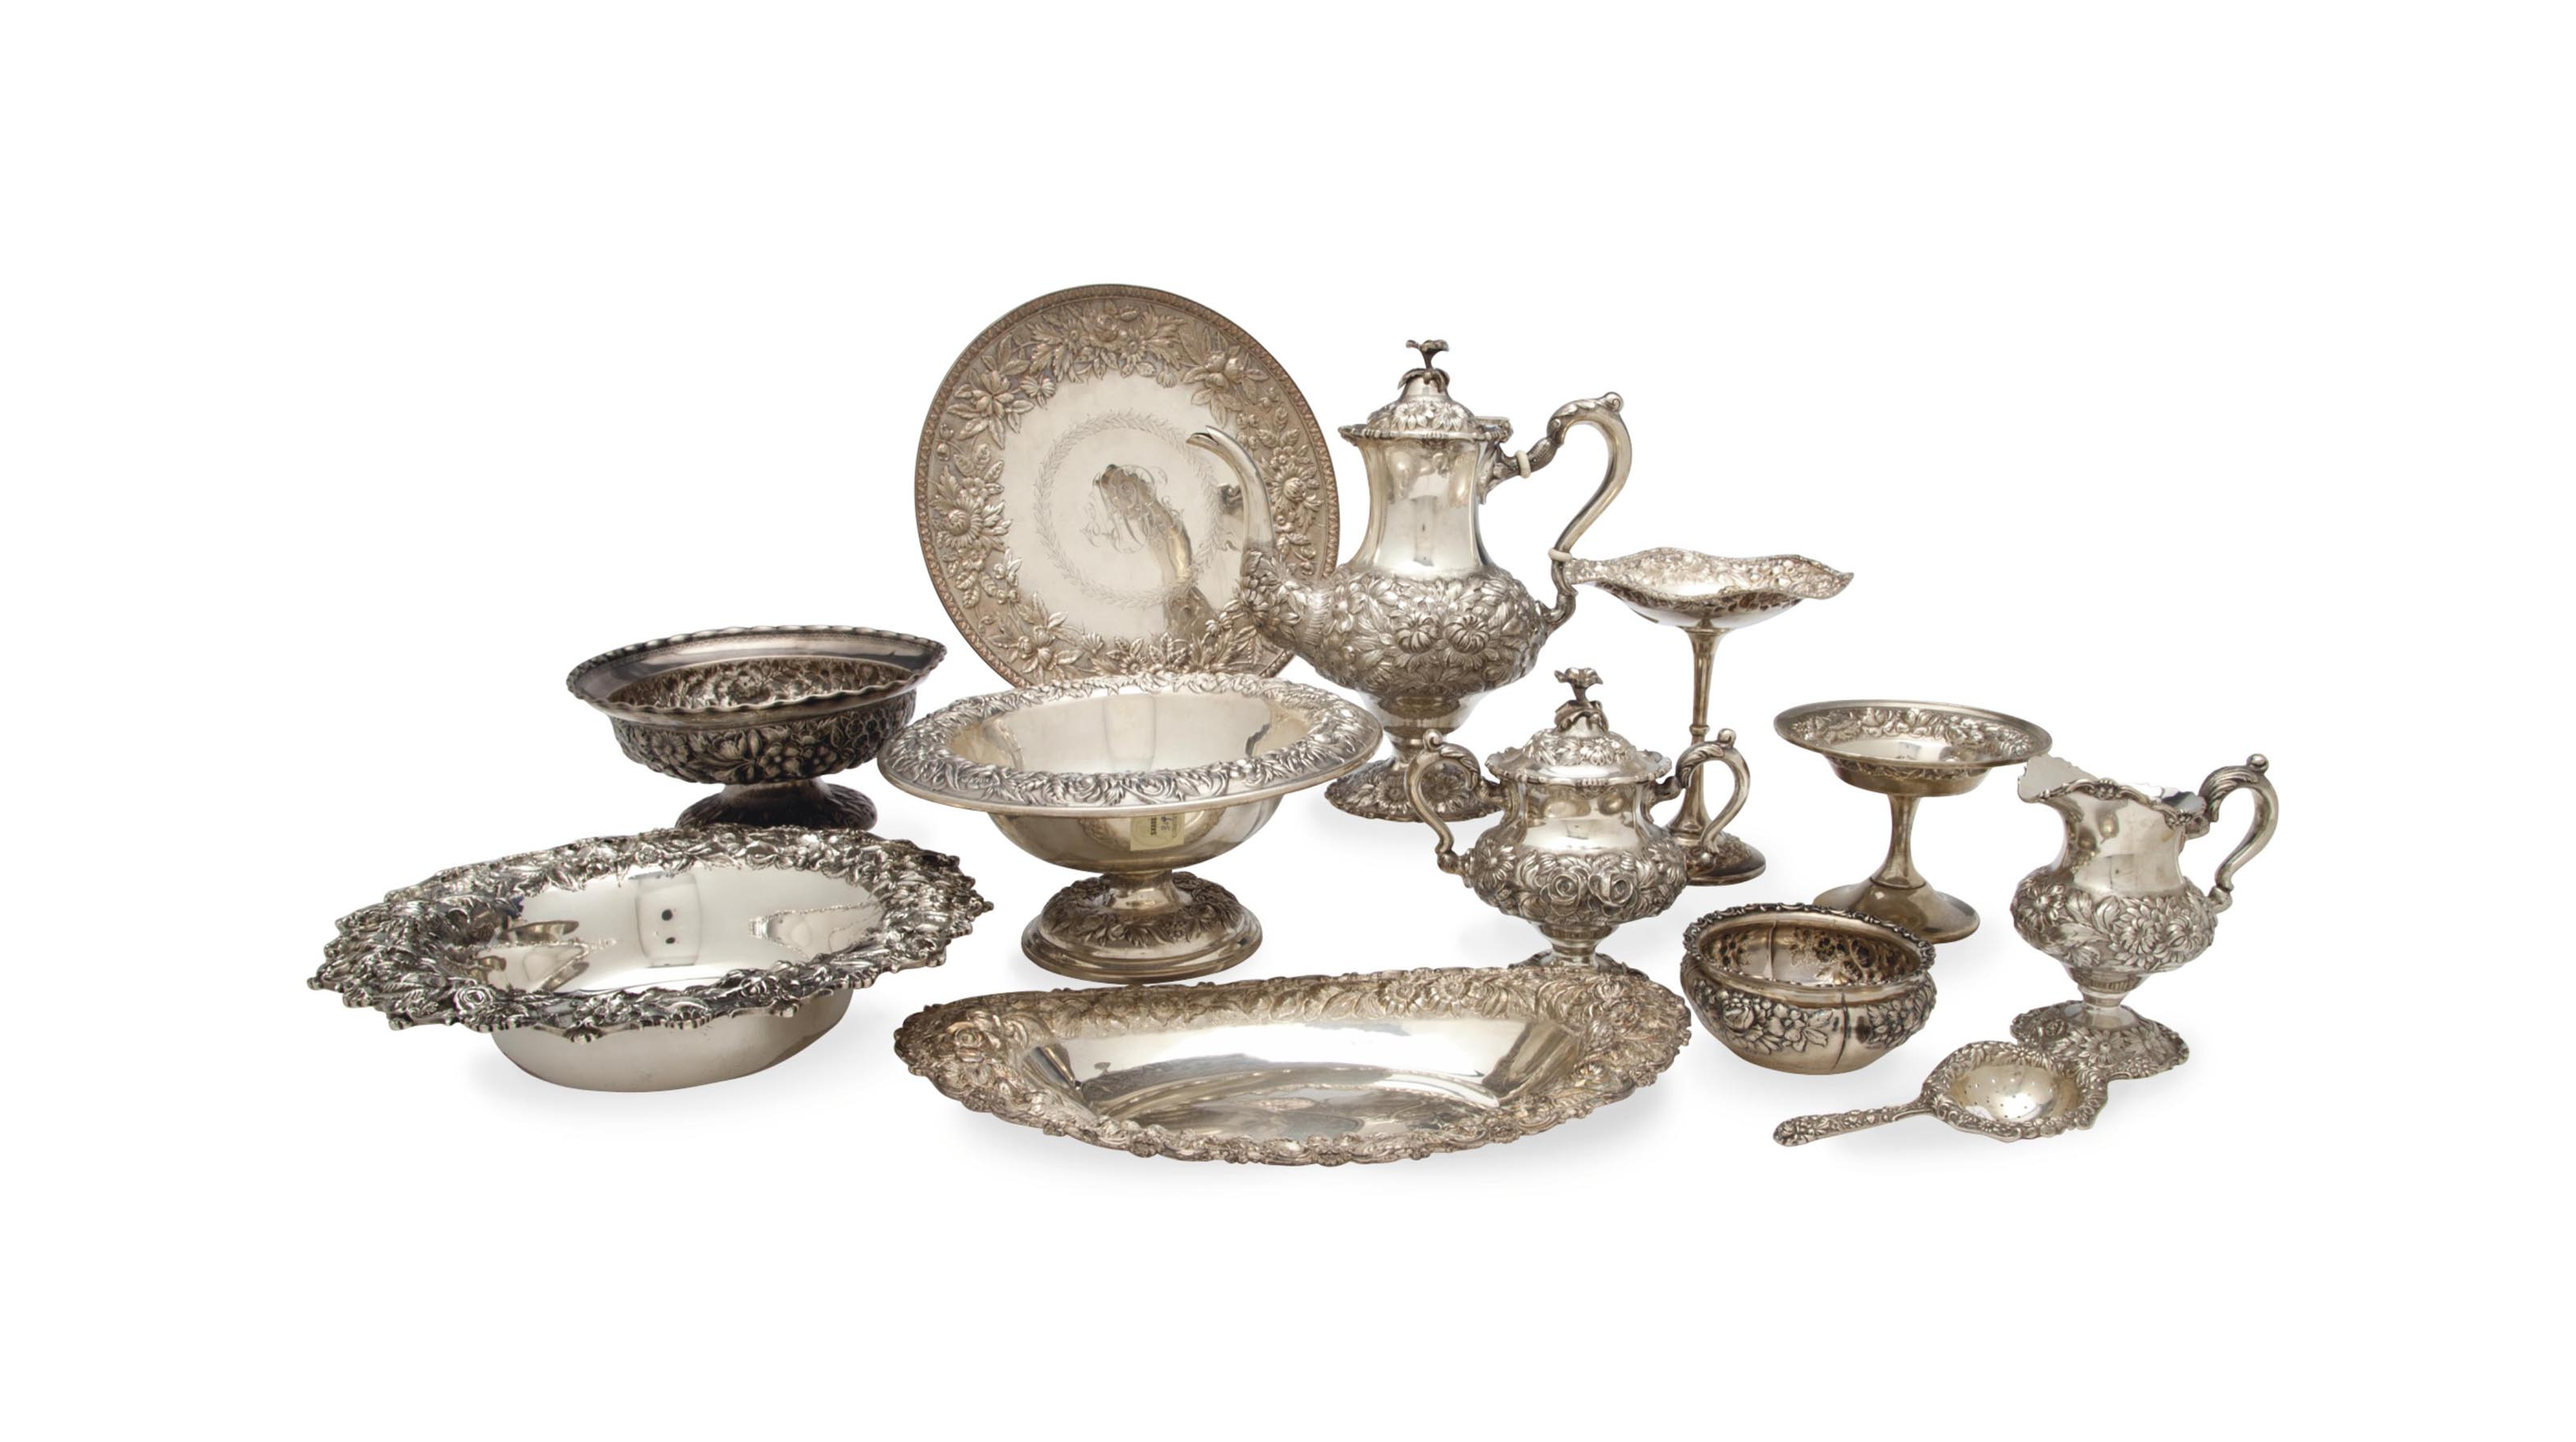 AN ASSEMBLED AMERICAN SILVER REPOUSSE TEA AND DESSERT SERVICE,